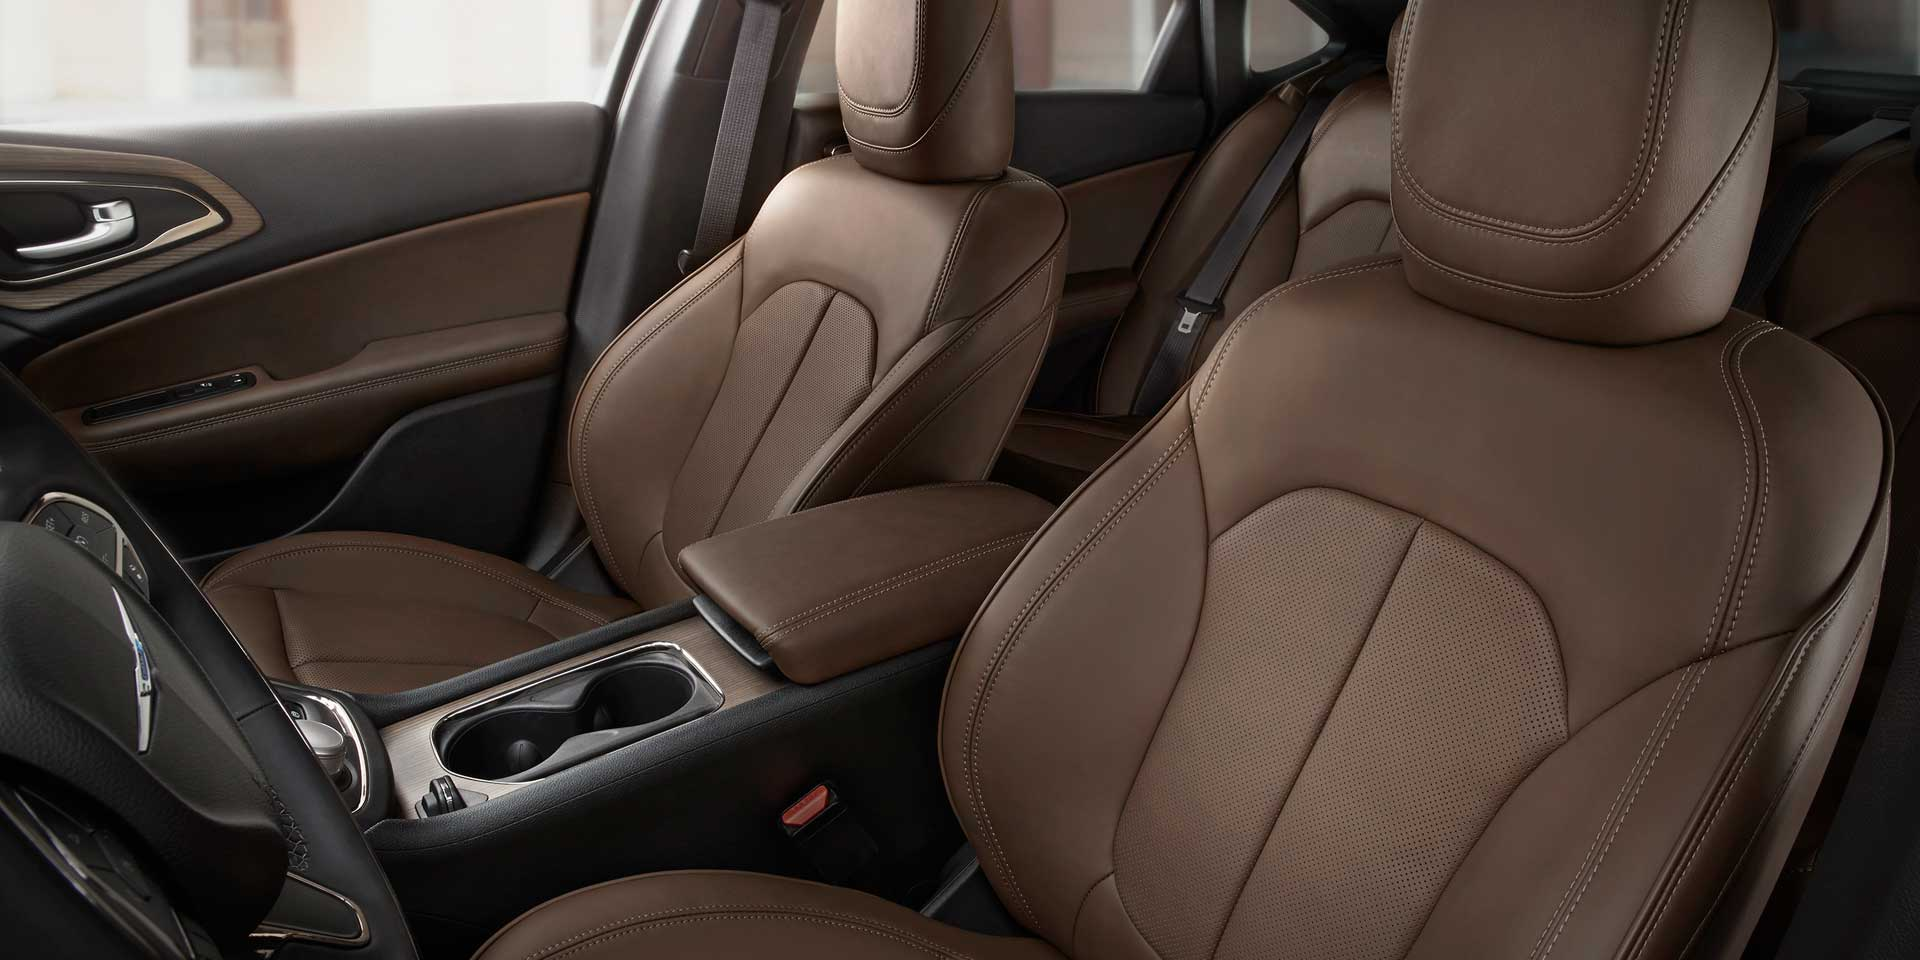 2017 Chrysler 200 The Is A Five Seat Mid Size Sedan That Competes With Ford Fusion Honda Accord Hyundai Sonata And Toyota Camry